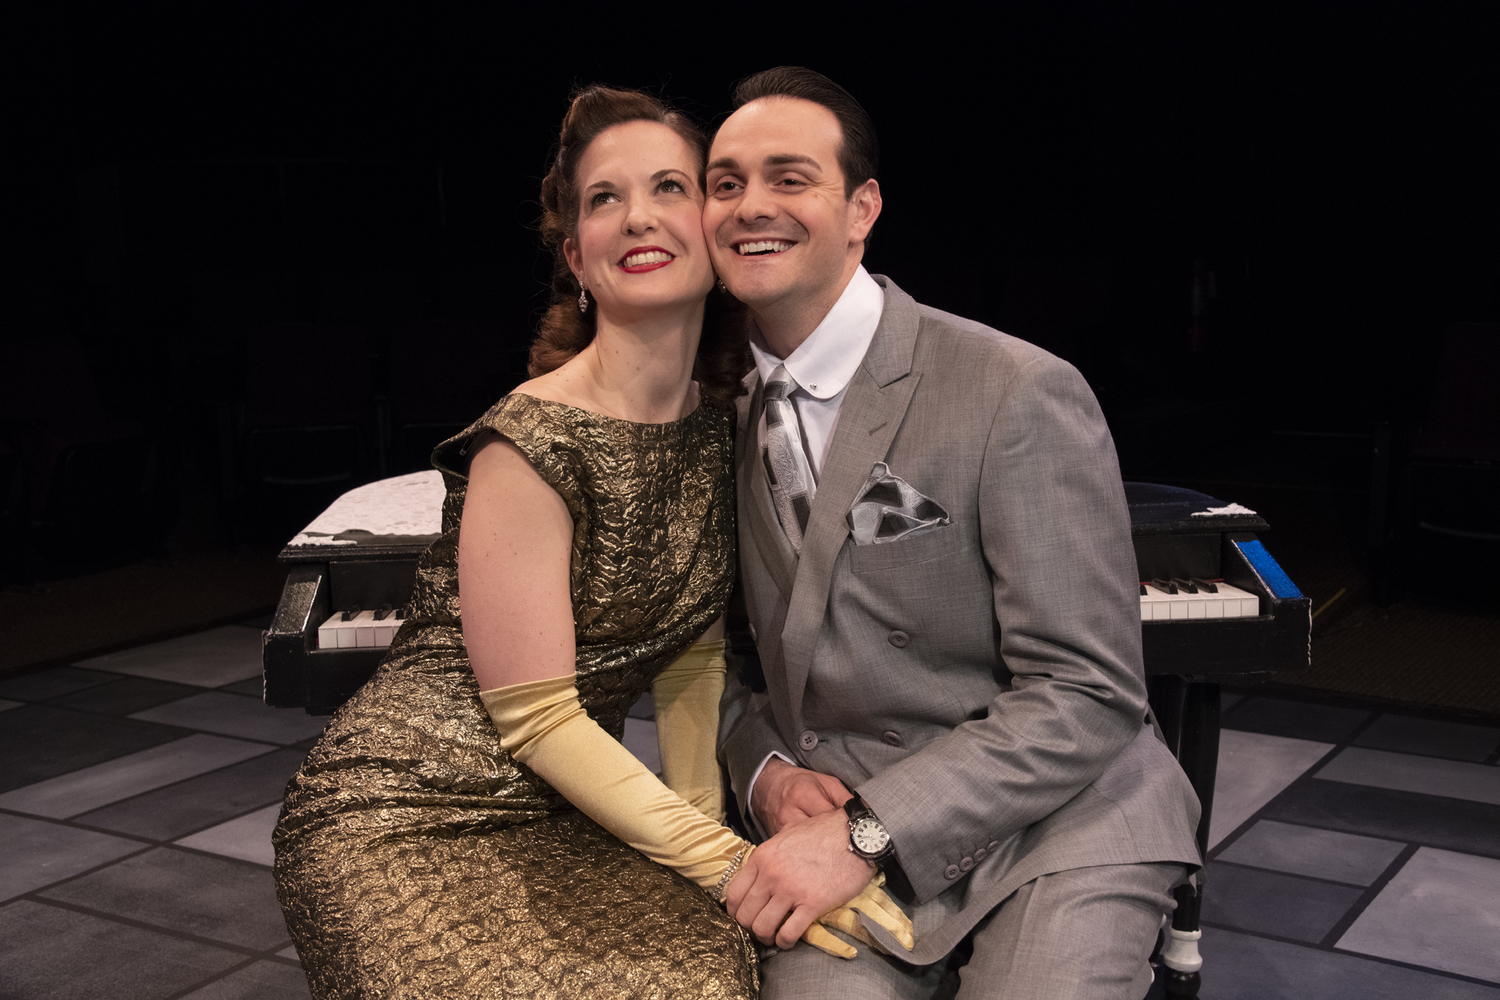 BWW Review: THE AWFUL TRUTH at IRISH CLASSICAL THEATRE